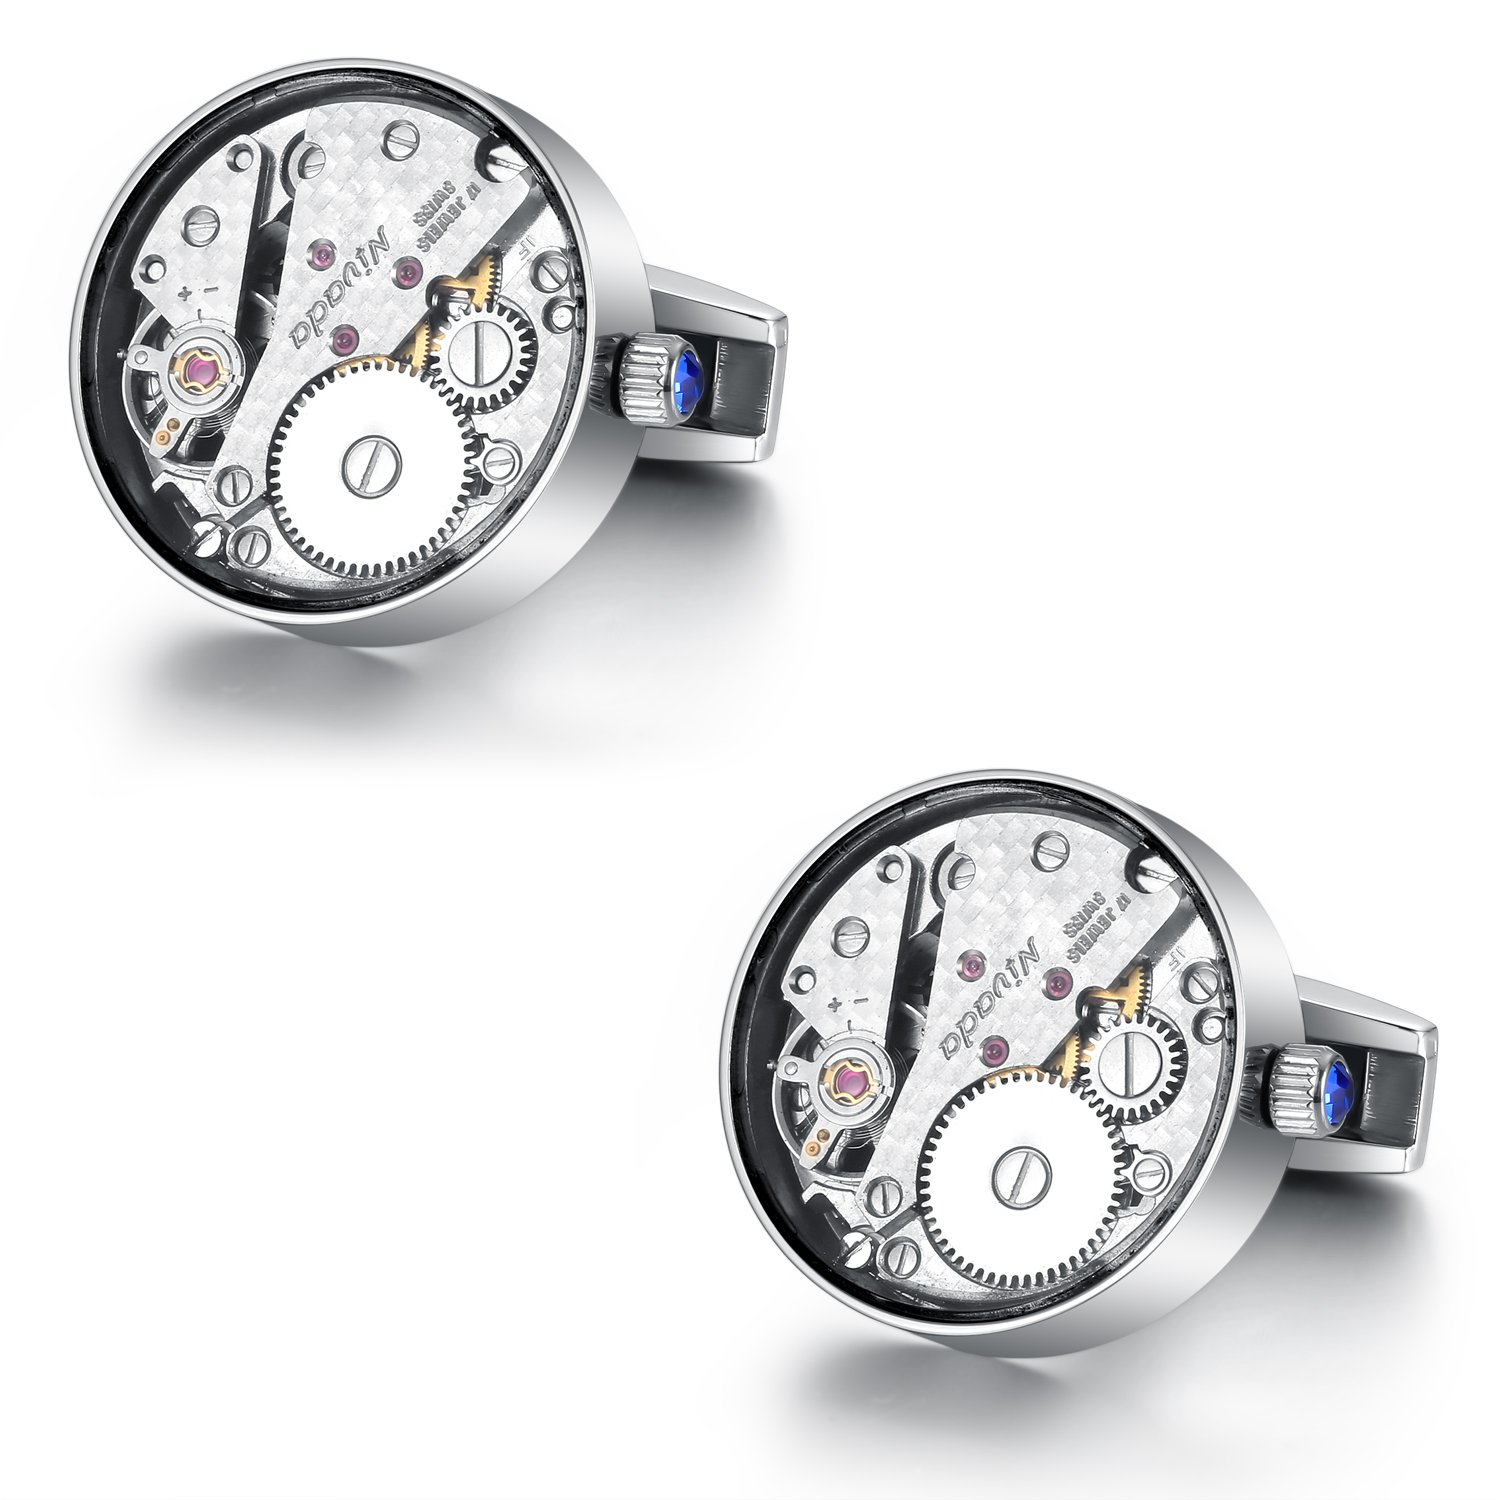 Dich Creat Men's Real Titanium Swiss Movement Cufflinks Covered with Glass/Individually numbered